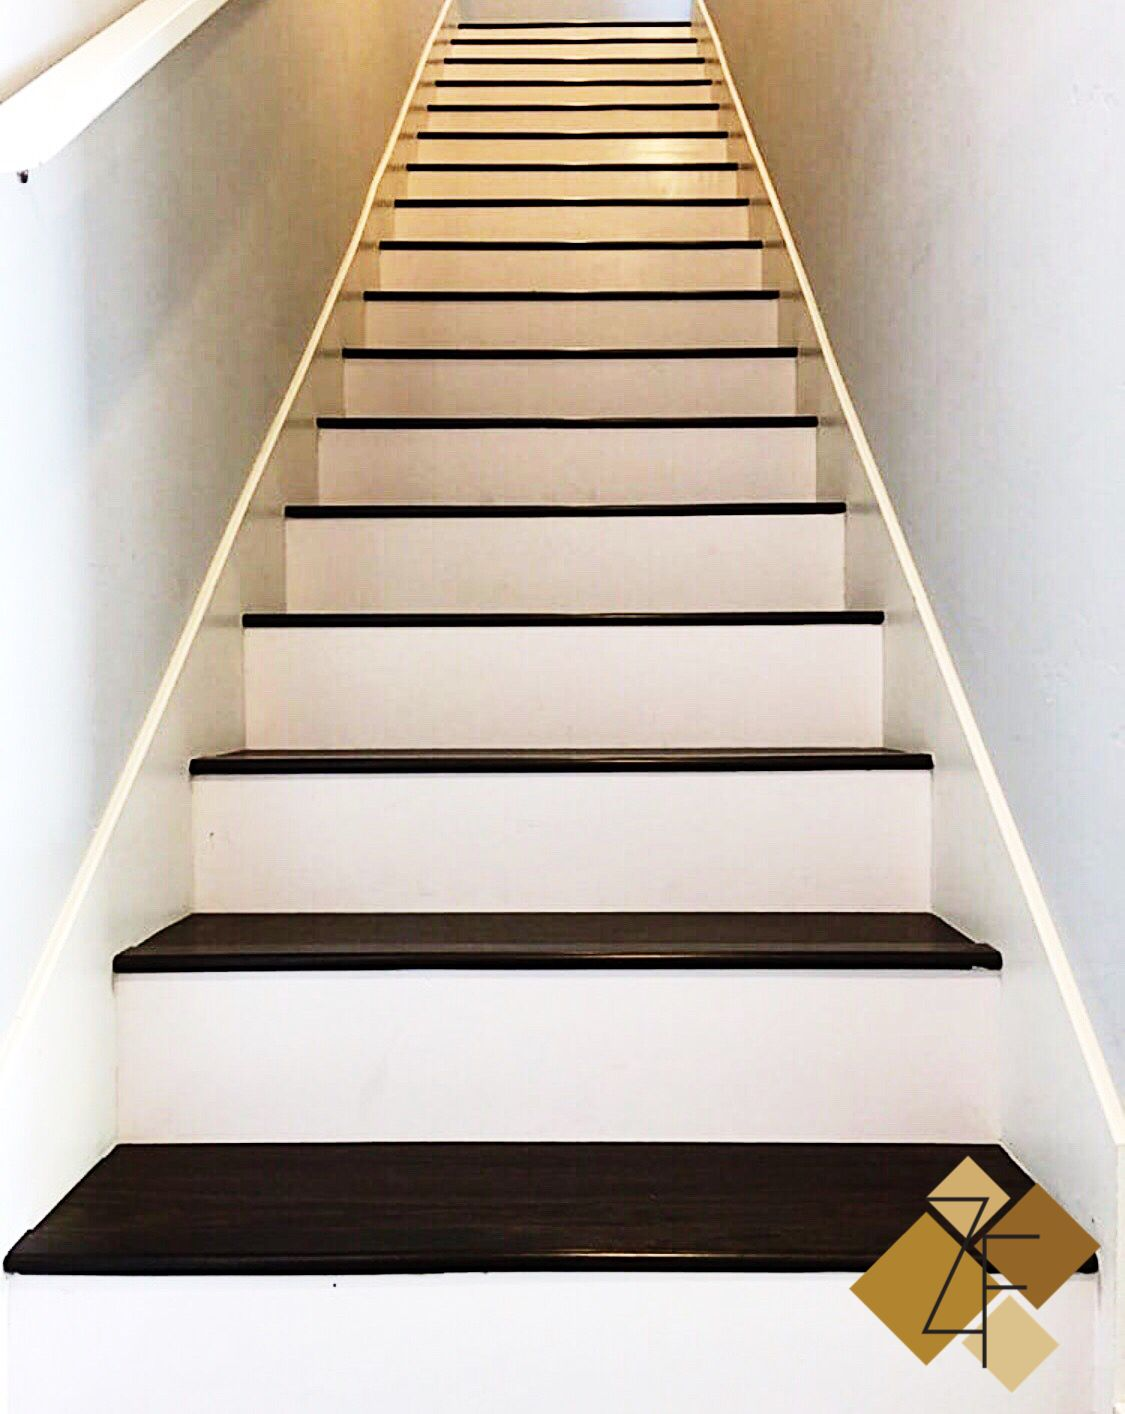 Laminate Stairs With White Risers Laminate Stairs Flooring Projects White Stair Risers